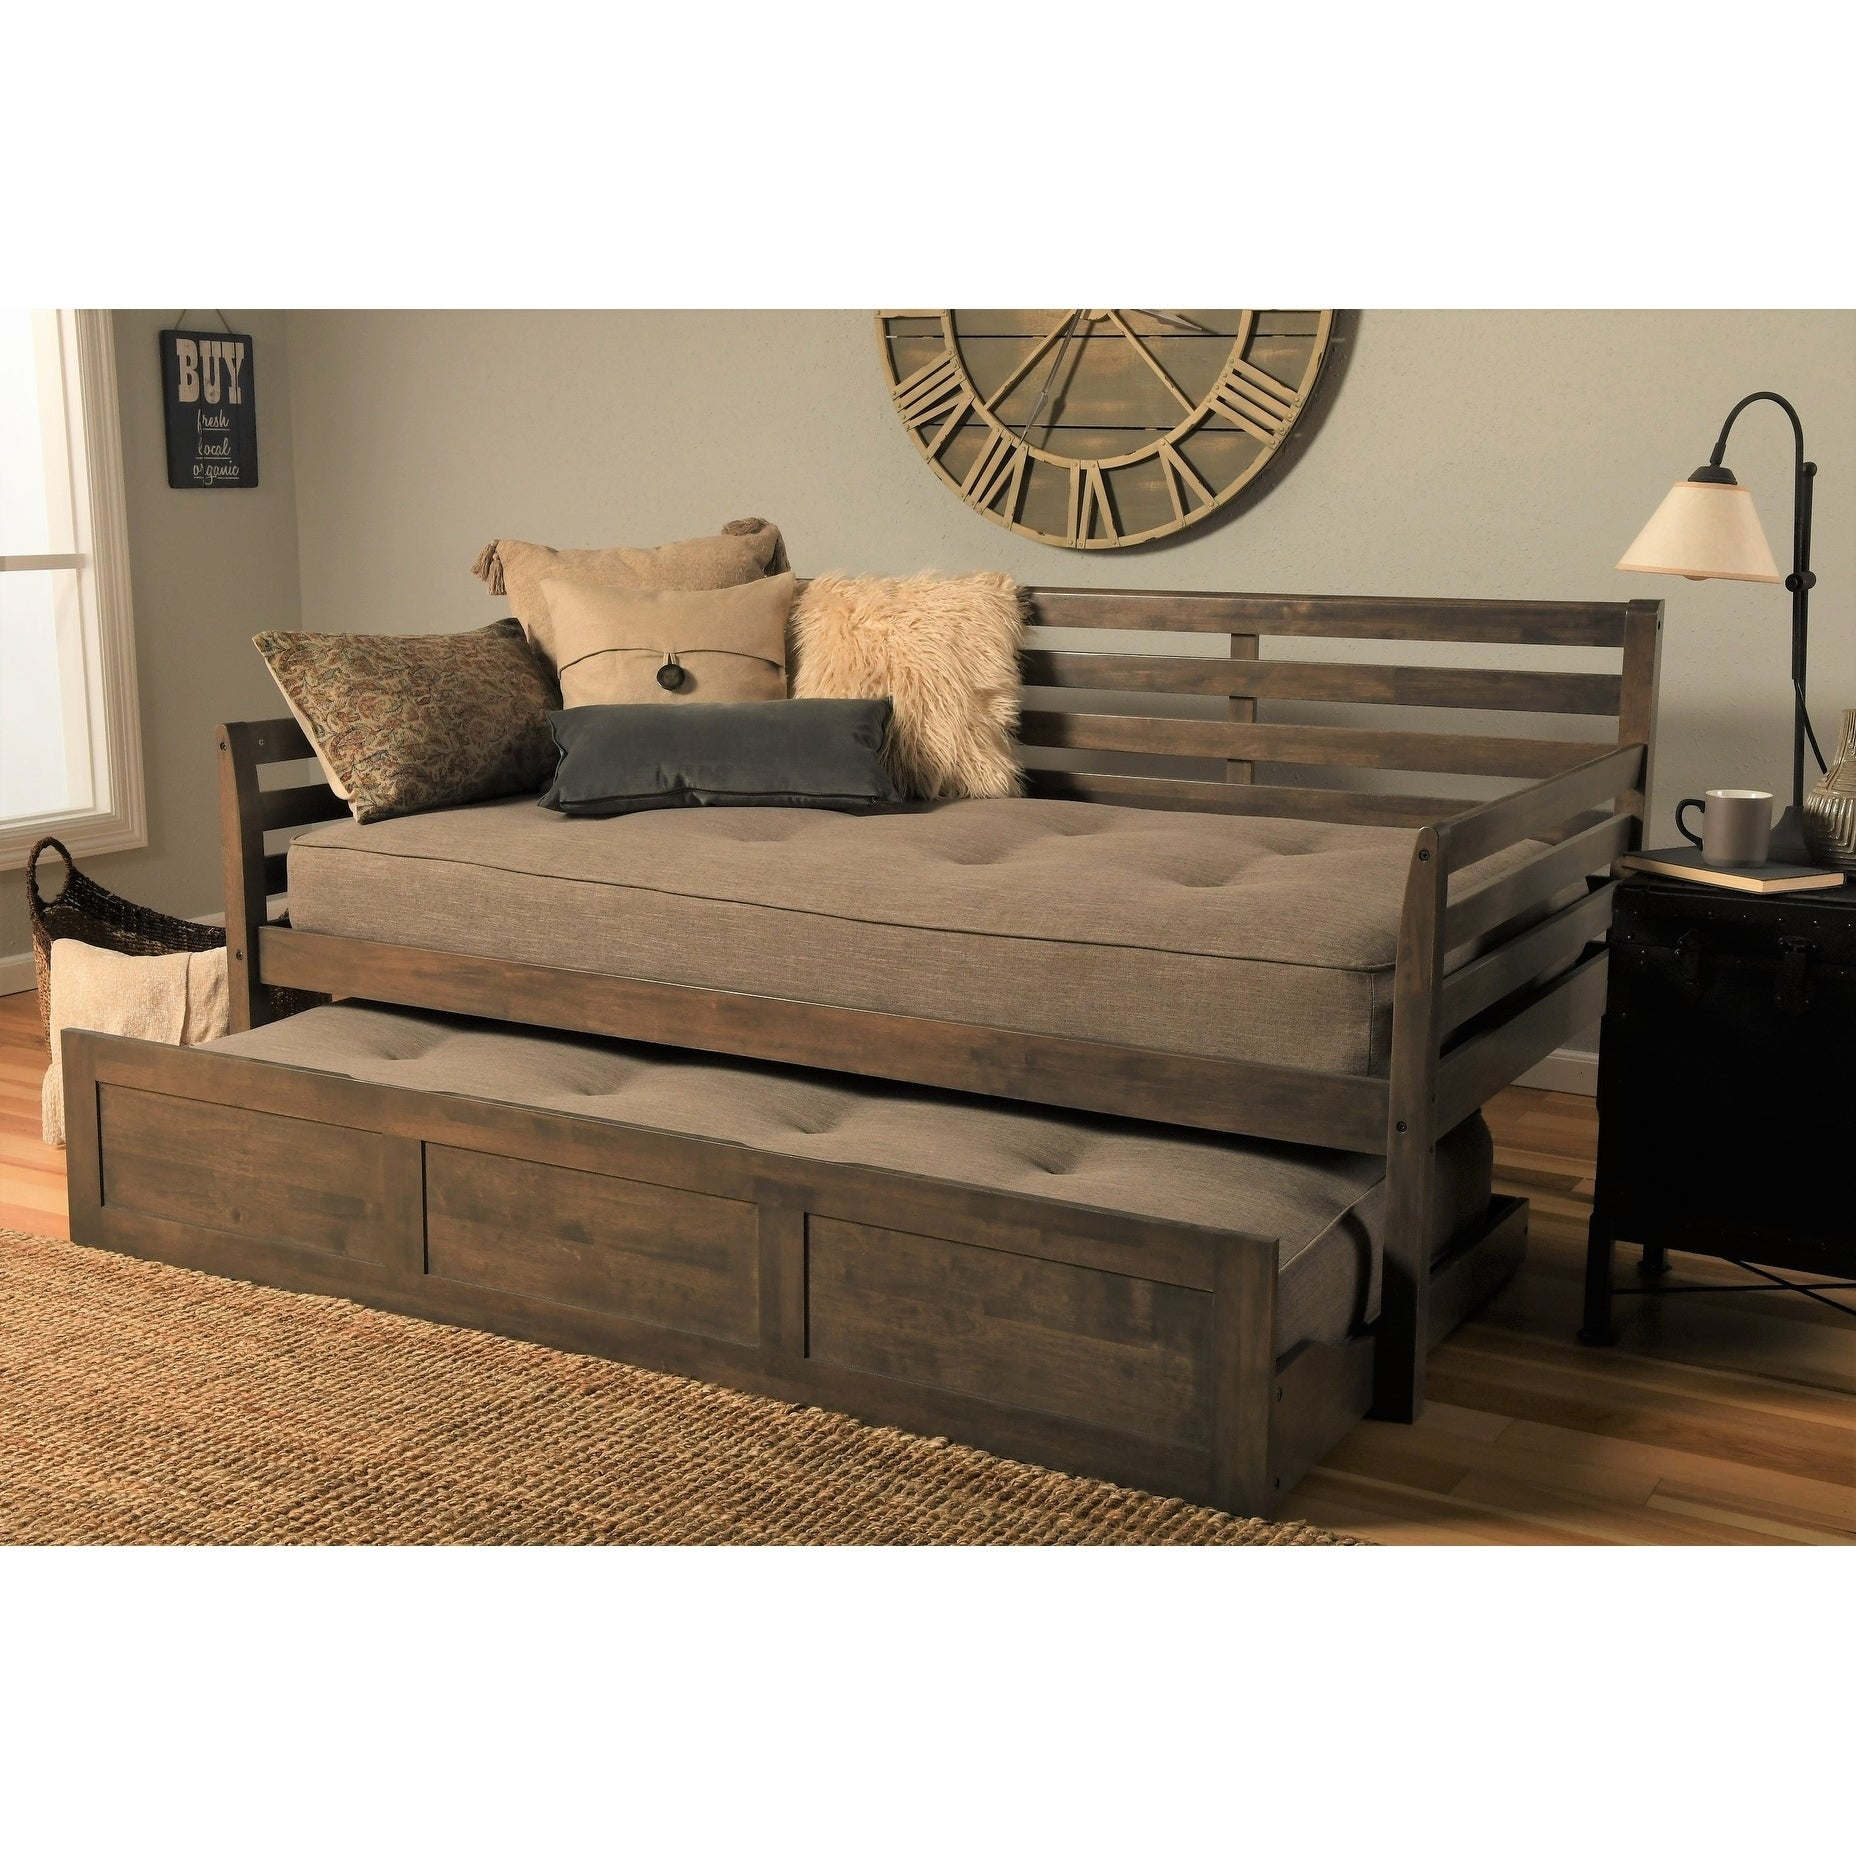 - Shop Copper Grove Kutaisi Daybed/Trundle Bed With Mattresses